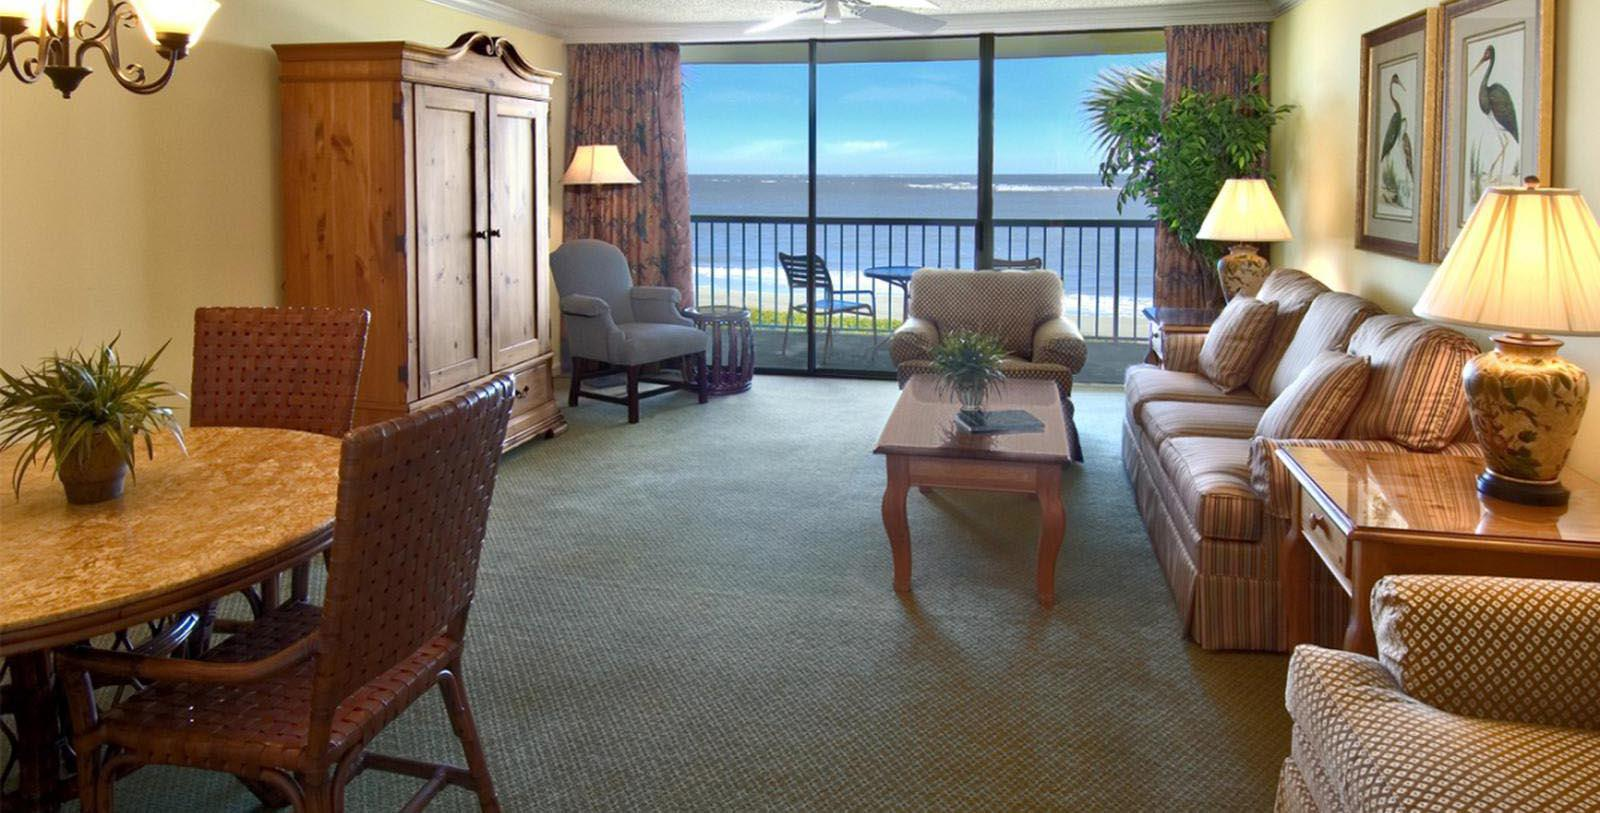 Image of Suite Living Area at The King and Prince Beach and Golf Resort, 1935, Member of Historic Hotels of America, on St. Simons Island, Georgia, Explore